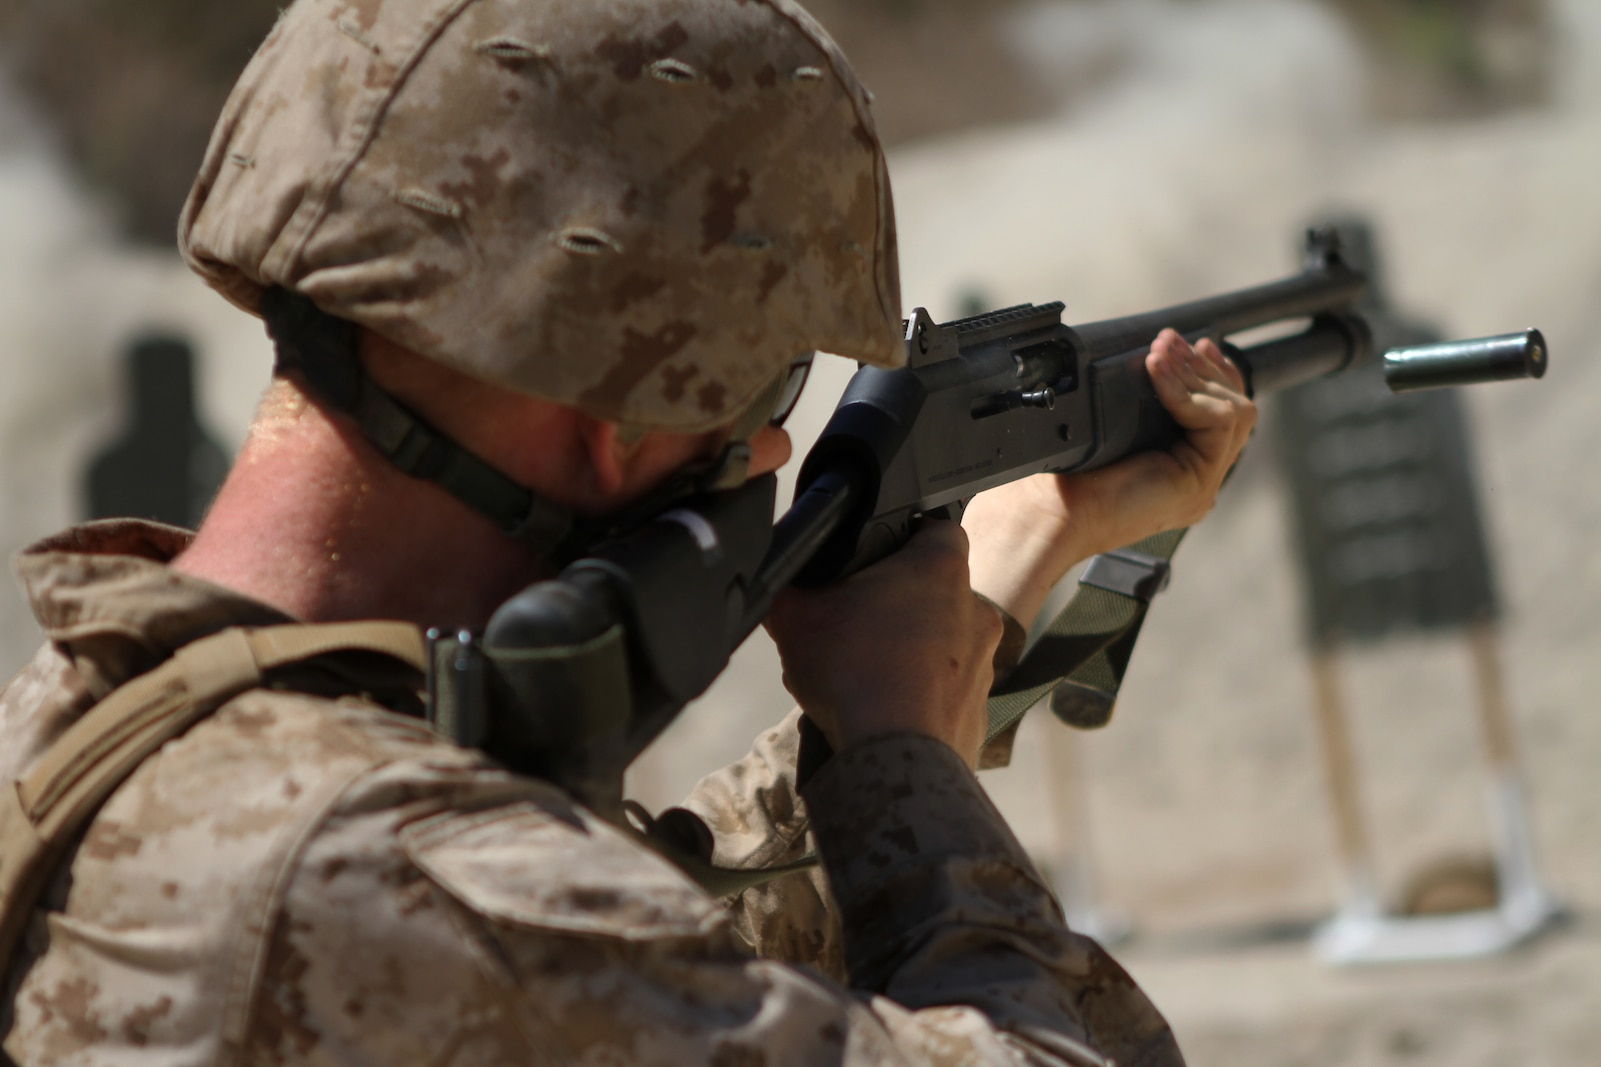 Lance Corporal Colin Stegal, an ammo technician with Ammo Company, 1st Supply Battalion, fires a M1014 shotgun aboard Marine Corps Base Camp Pendleton, Calif., Sept. 15, 2014. The range required Marines to demonstrate proficiency with the M1014 shotgun. The live-fire ranges were part of an annual training package to keep the Marines confident and proficient with each weapon system.